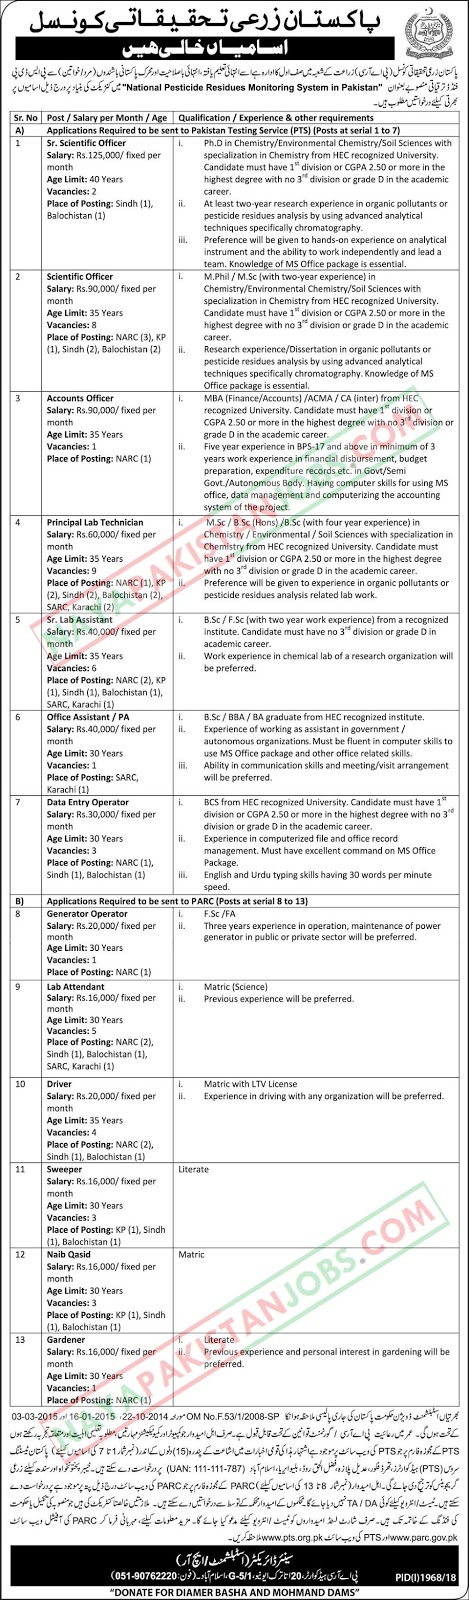 Latest Vacancies Announced in Pakistan Agriculture Research Council Islamabad - PTS Application form Download- 2 November 2018 - Naya Pakistan